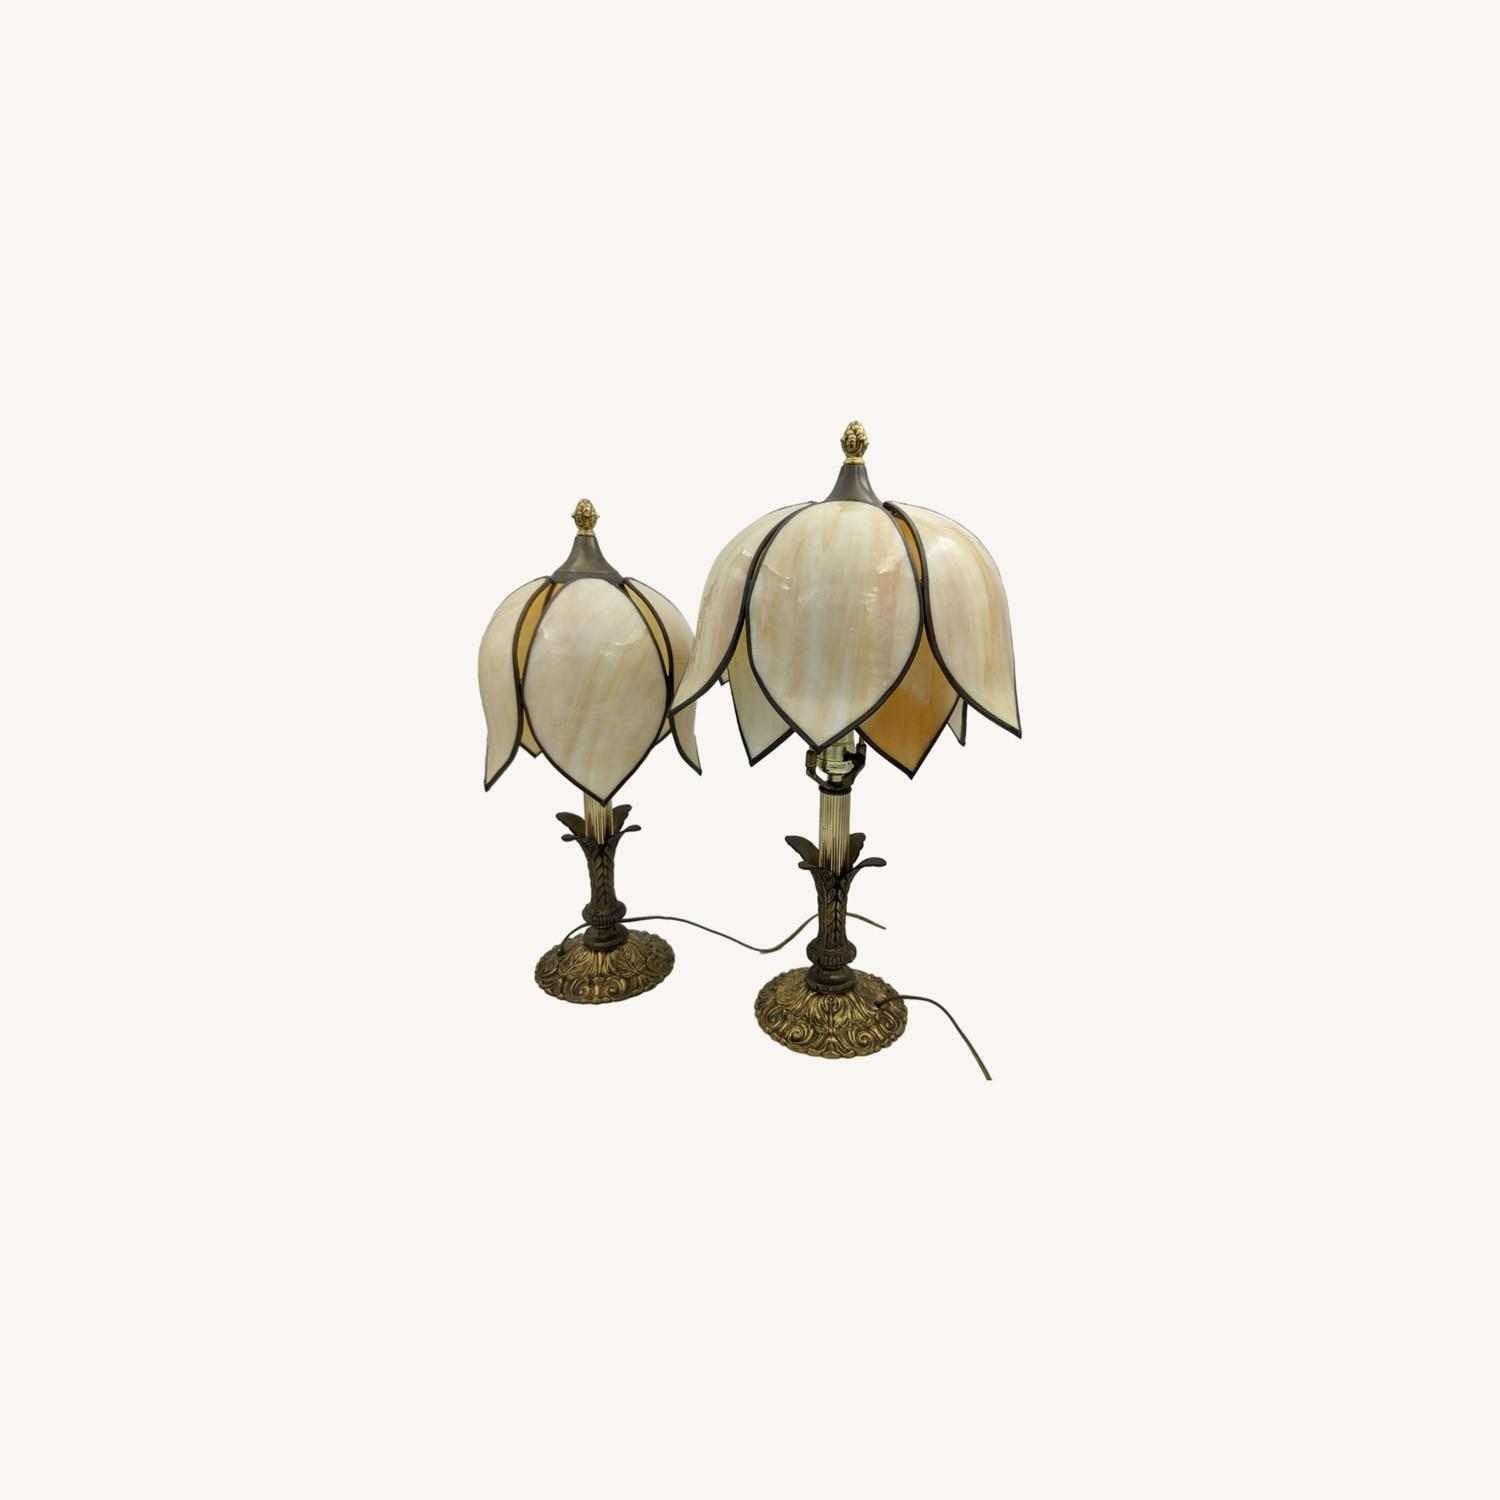 Set of 1920s Tulip Table Lamps - Slag Glass - image-0